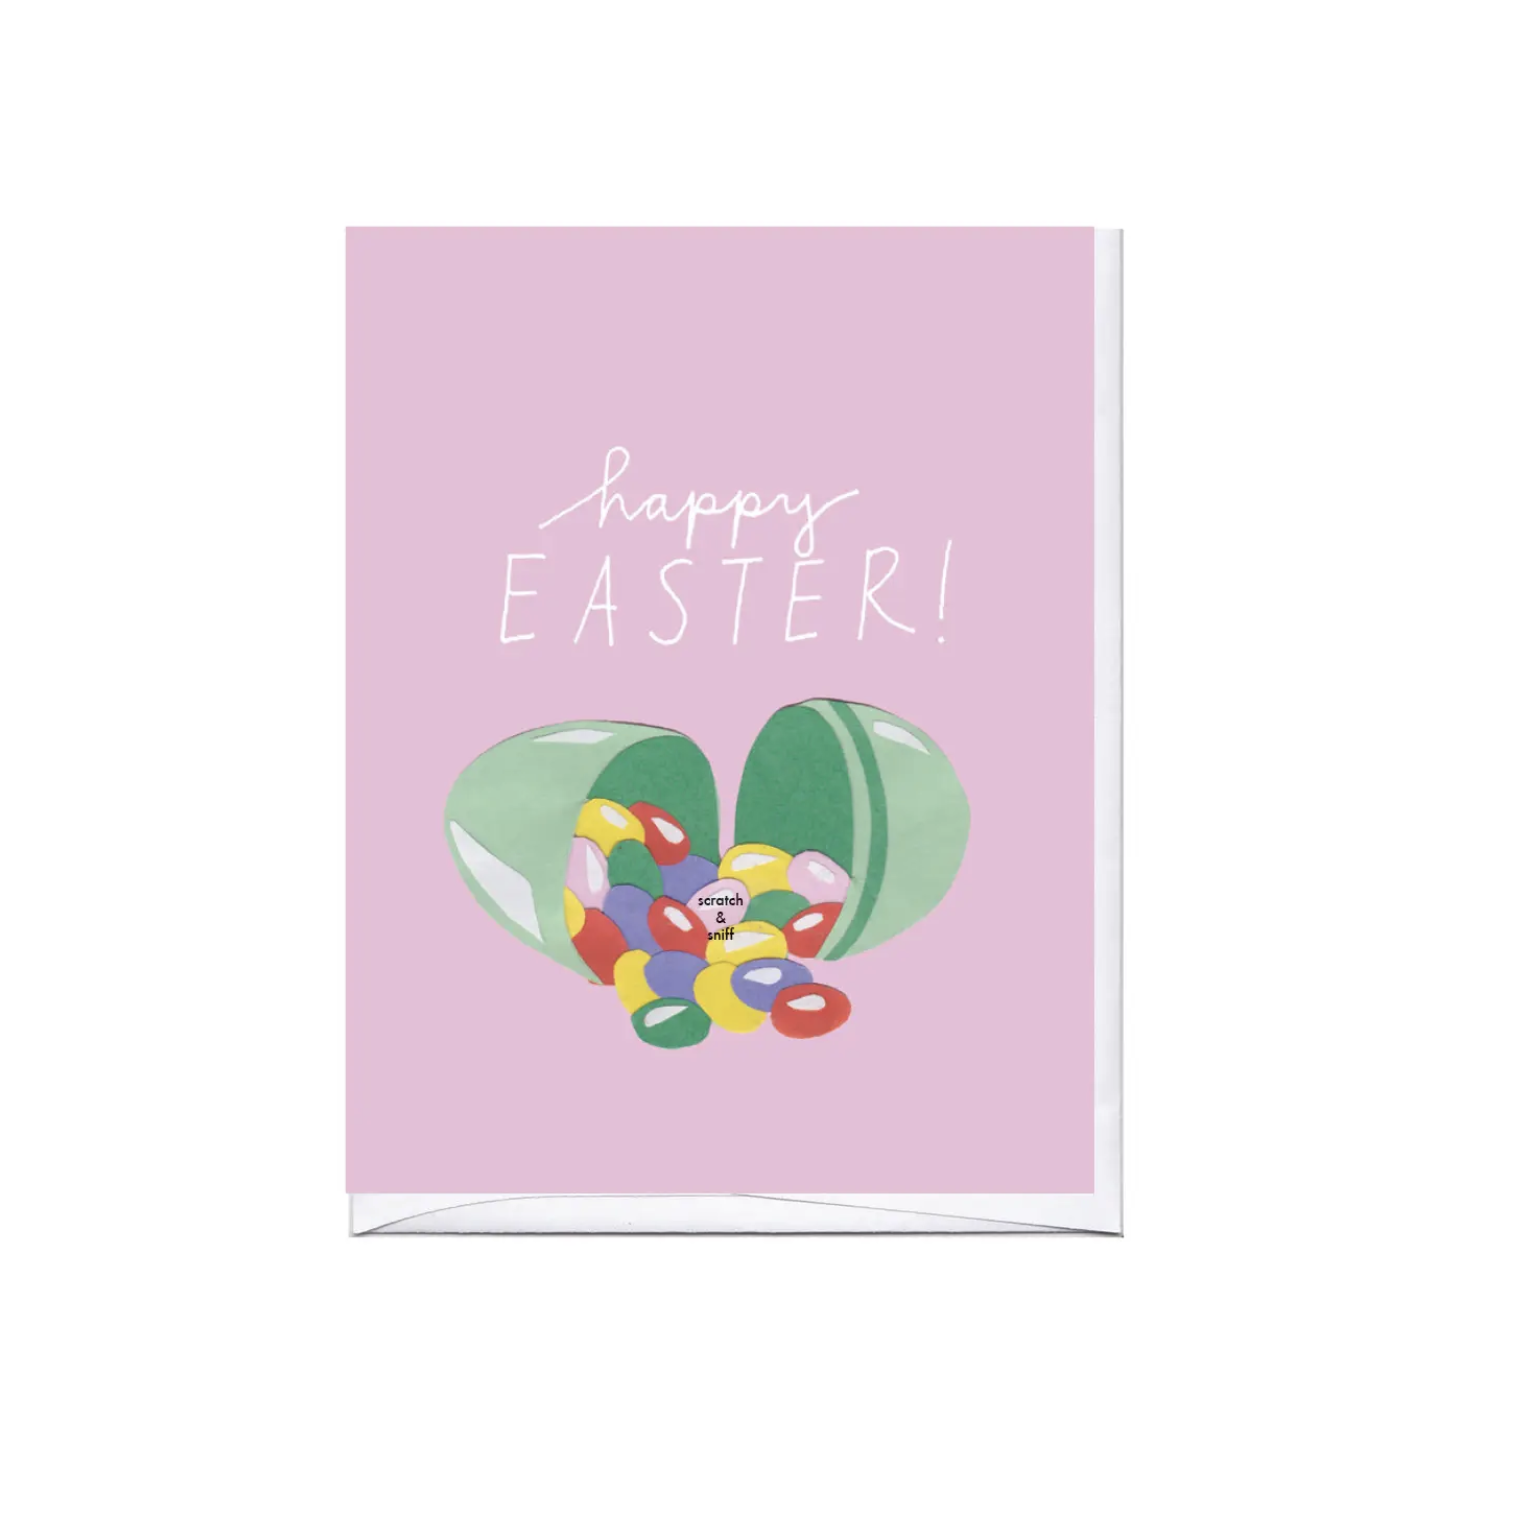 Easter Scratch & Sniff Jelly Beans Easter Card